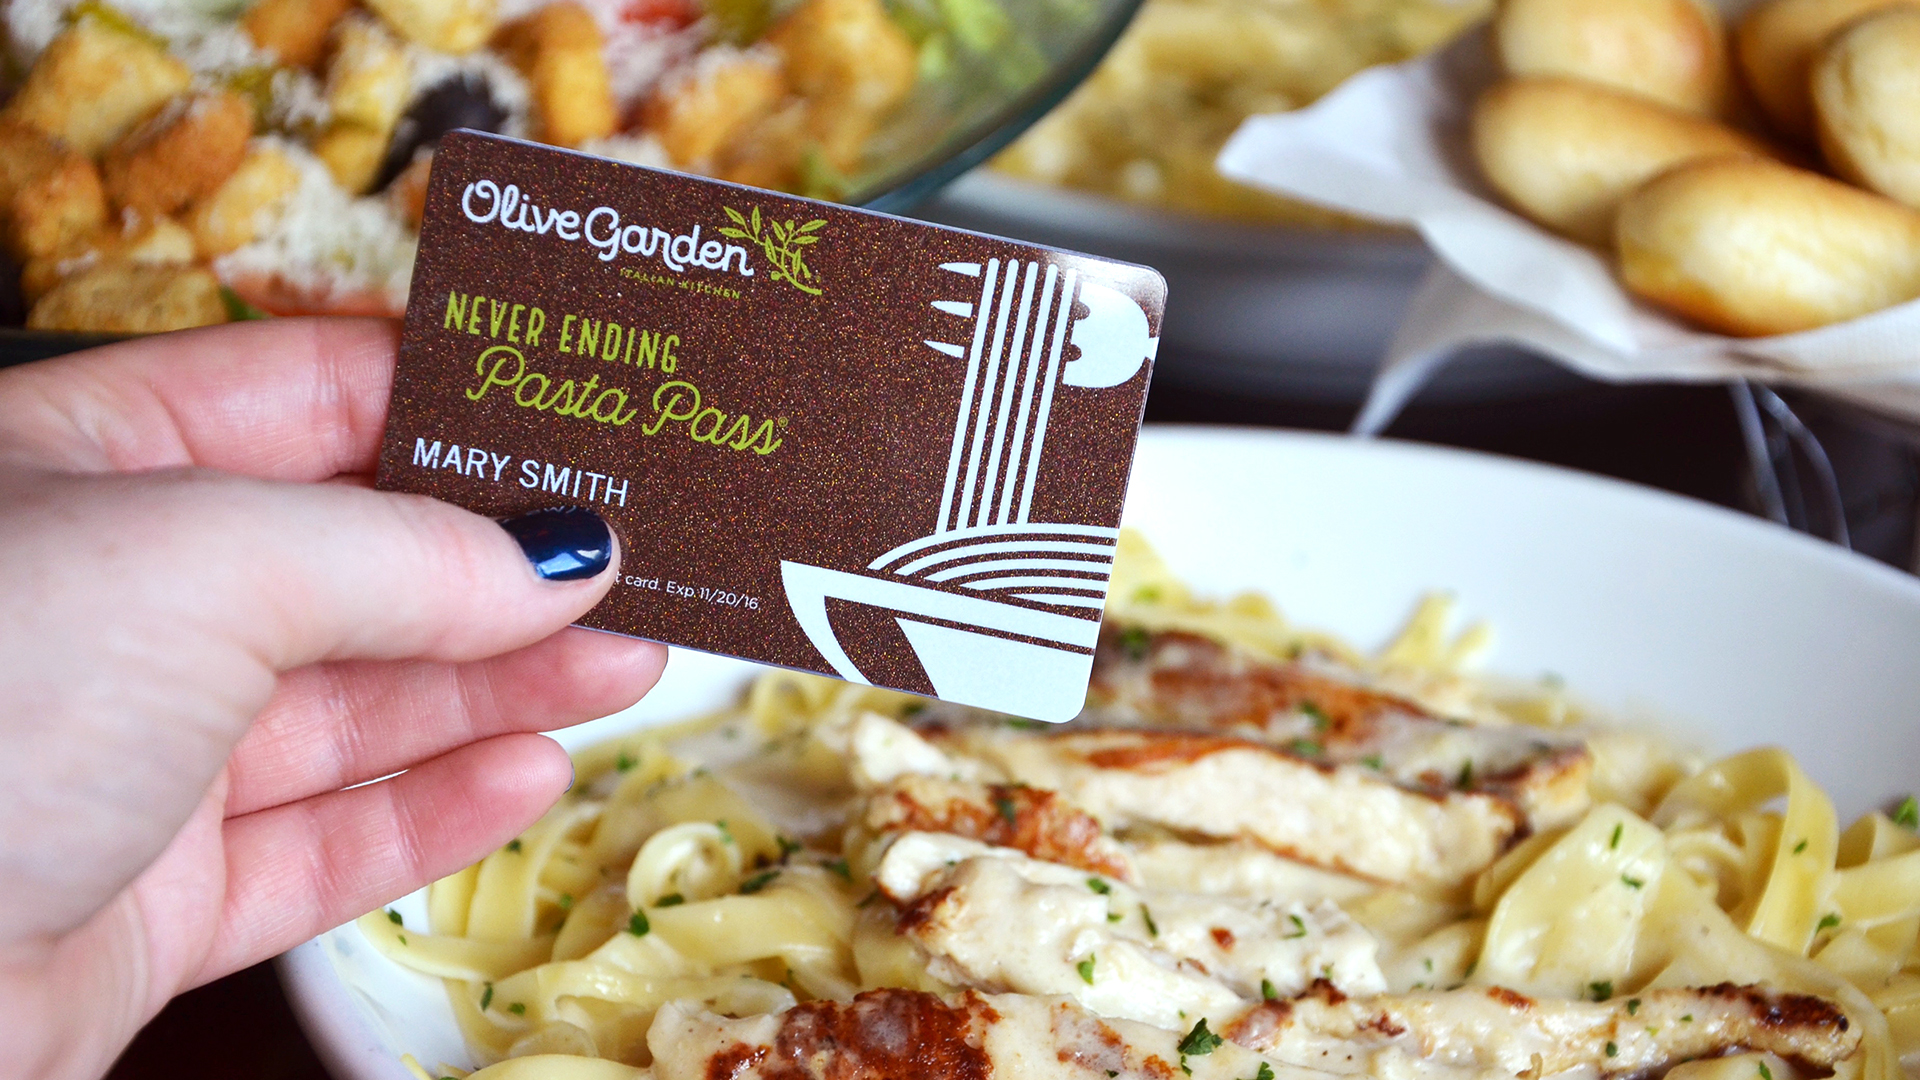 All The Pasta You Can Eat With Olive Garden S Never Ending: How To Get A Sold Out Olive Garden Never Ending Pasta Pass